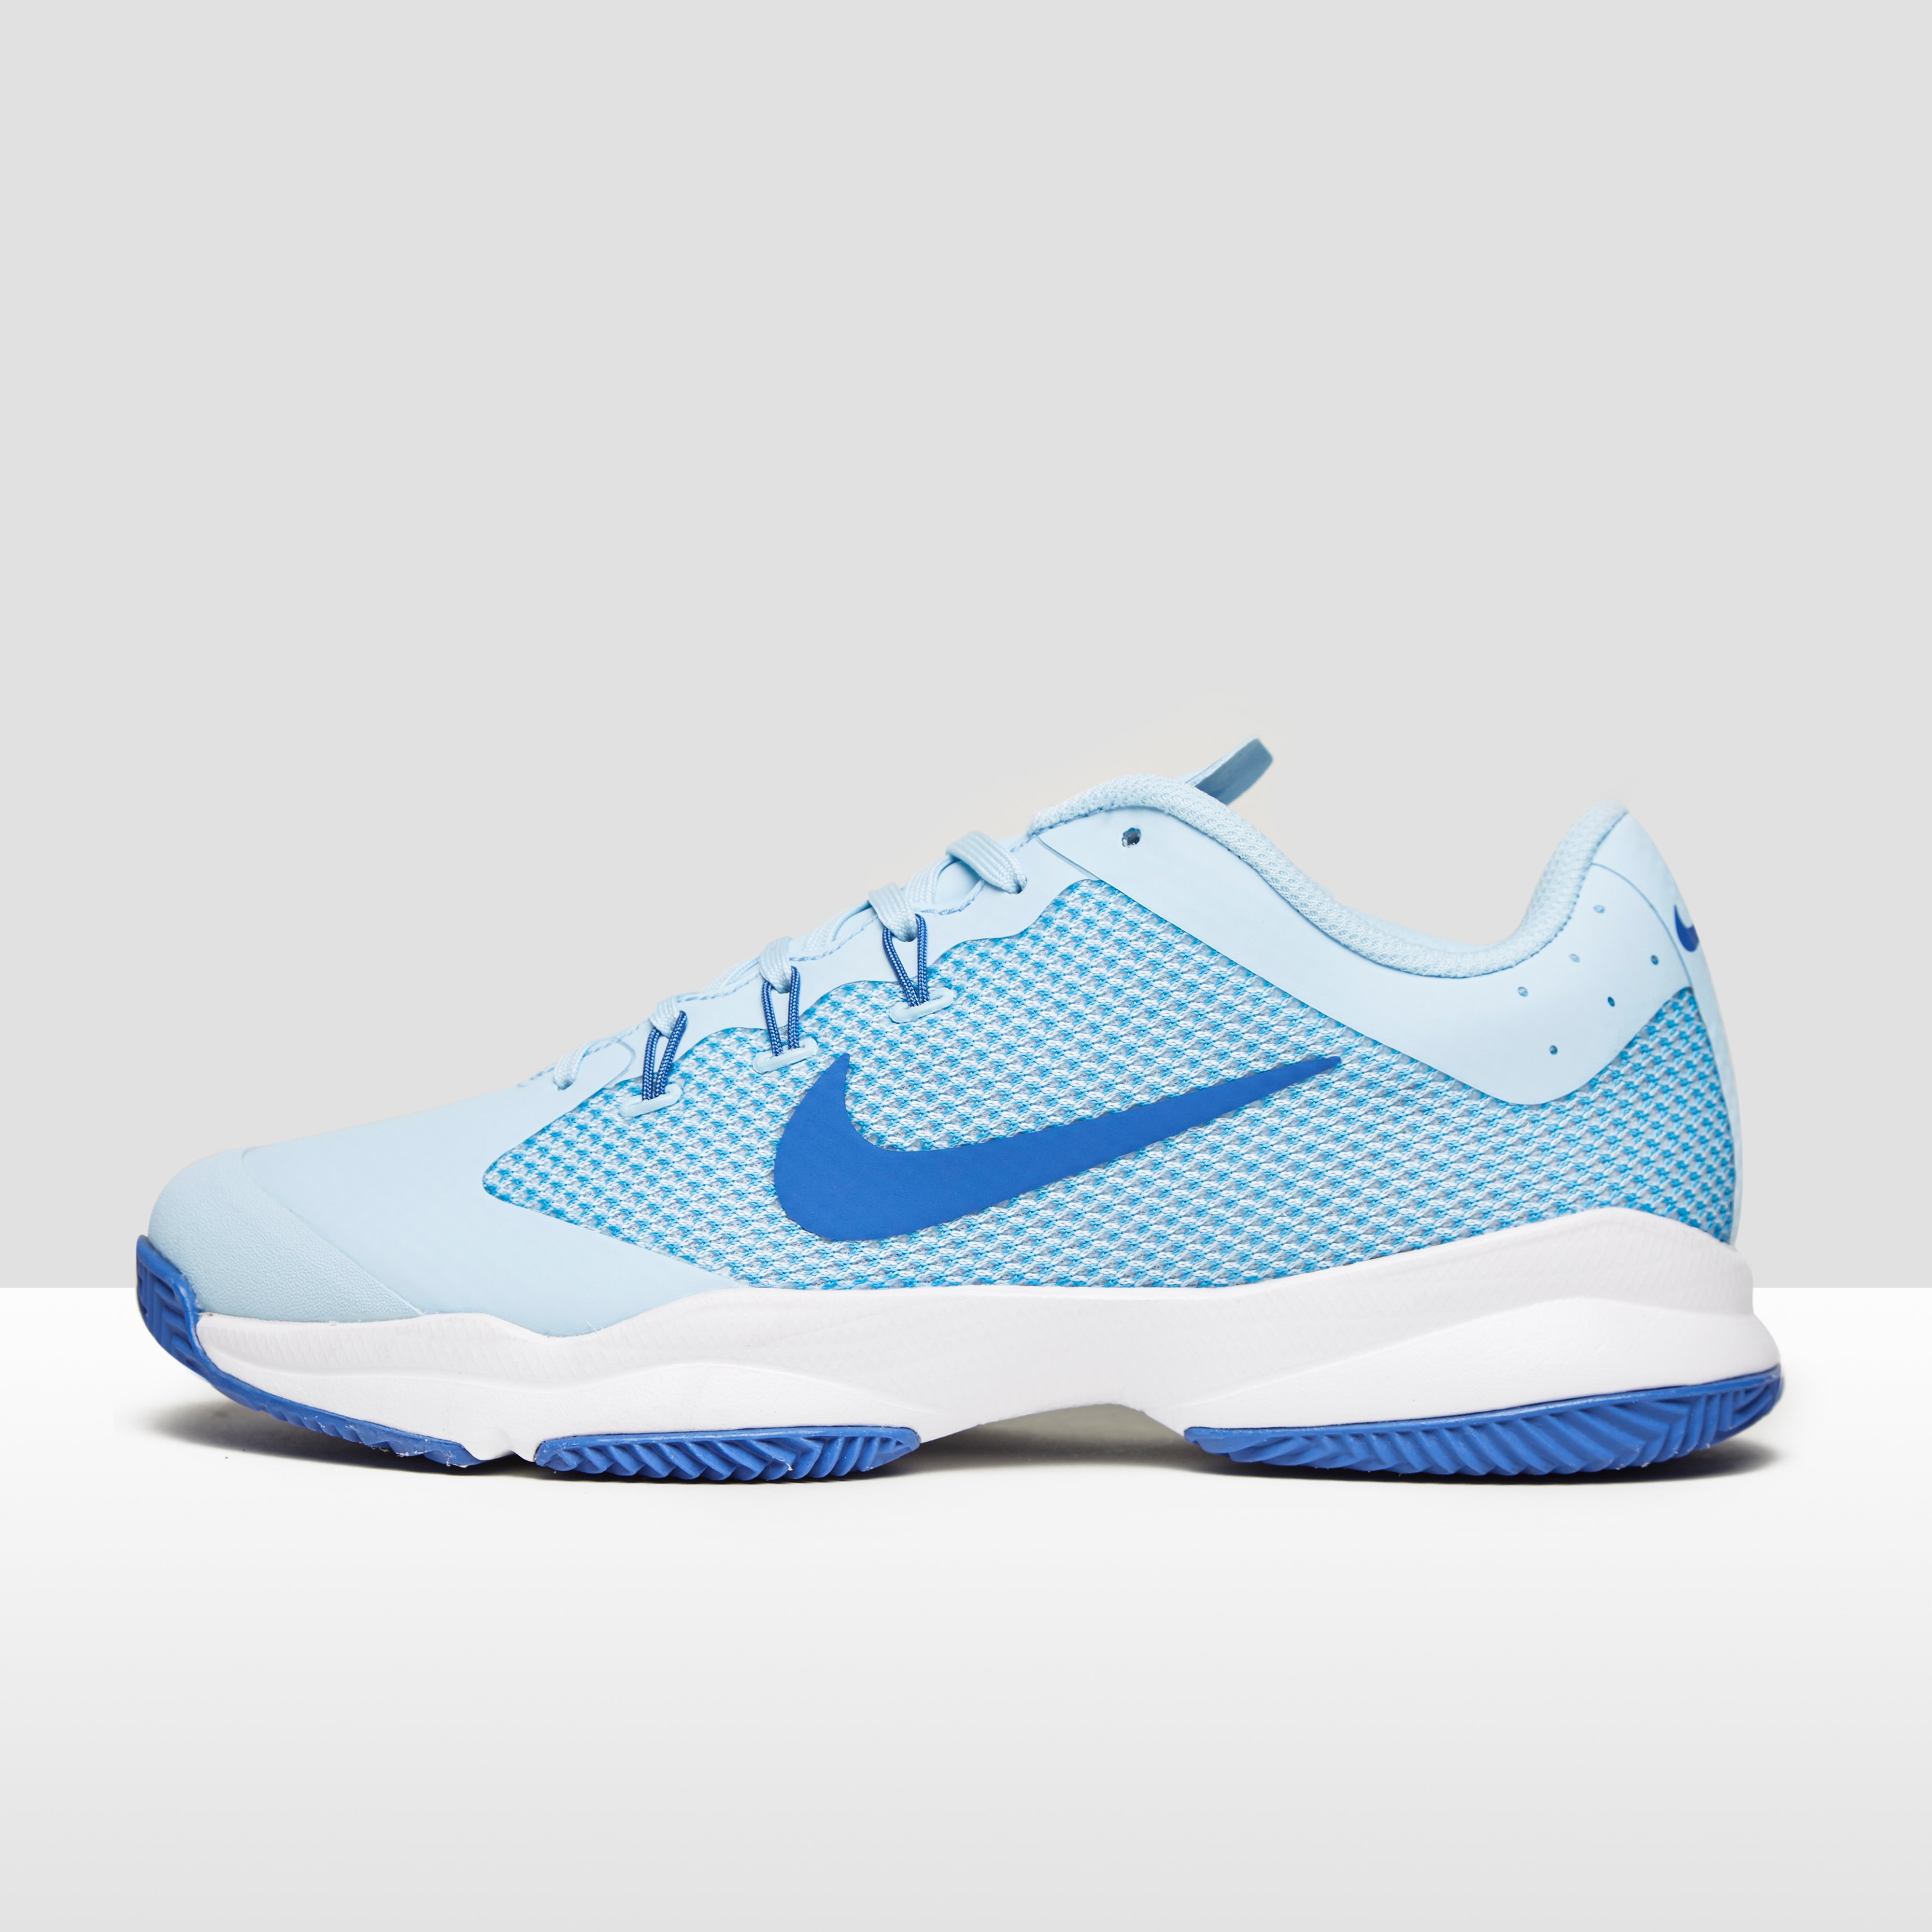 wholesale dealer 308be 70bfe NIKE COURT AIR ZOOM ULTRA CLAY TENNISSCHOENEN BLAUW DAMES